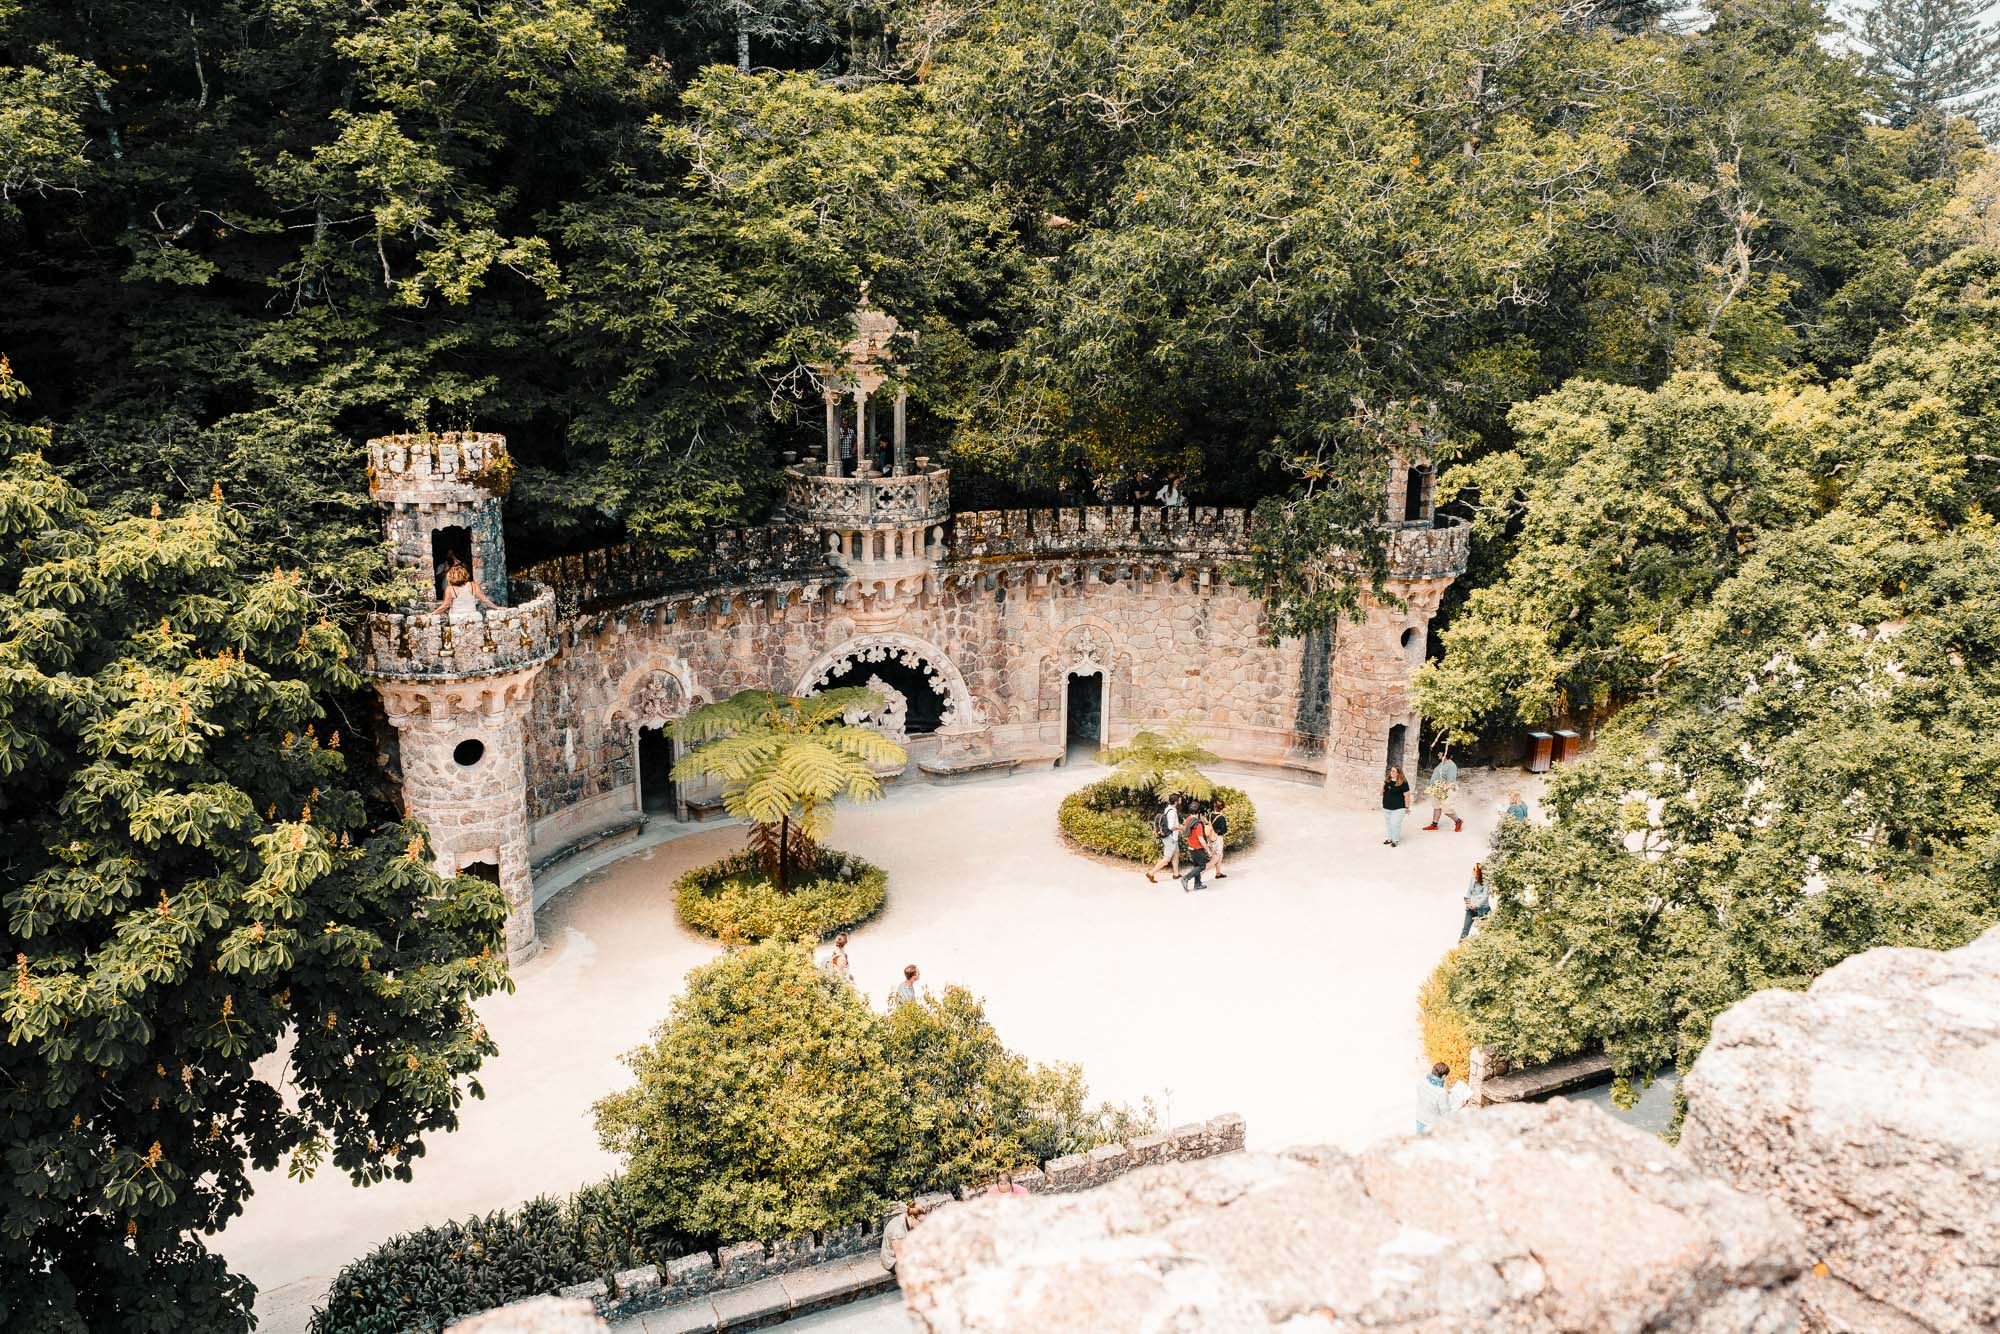 The grounds of Quinta Da Regaleira near Lisbon in Sintra, Portugal